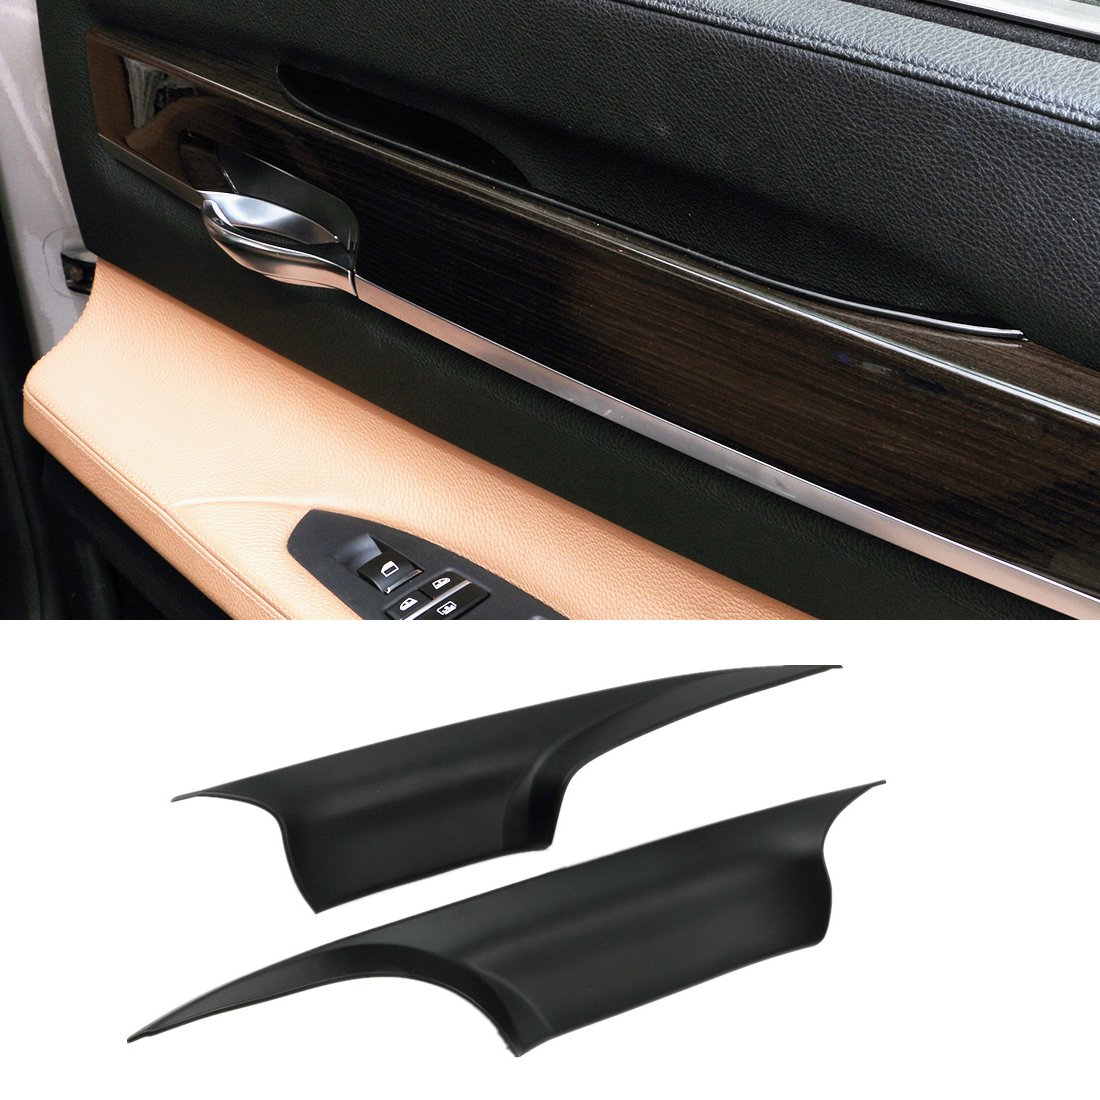 For BMW 7 Series Door Pull Handle Covers,Jaronx Left Front and Right Front Door Handle Carrier Trim Cover Kit (Fits:BMW 730 740 750 760 F01/F02 2008-2014)